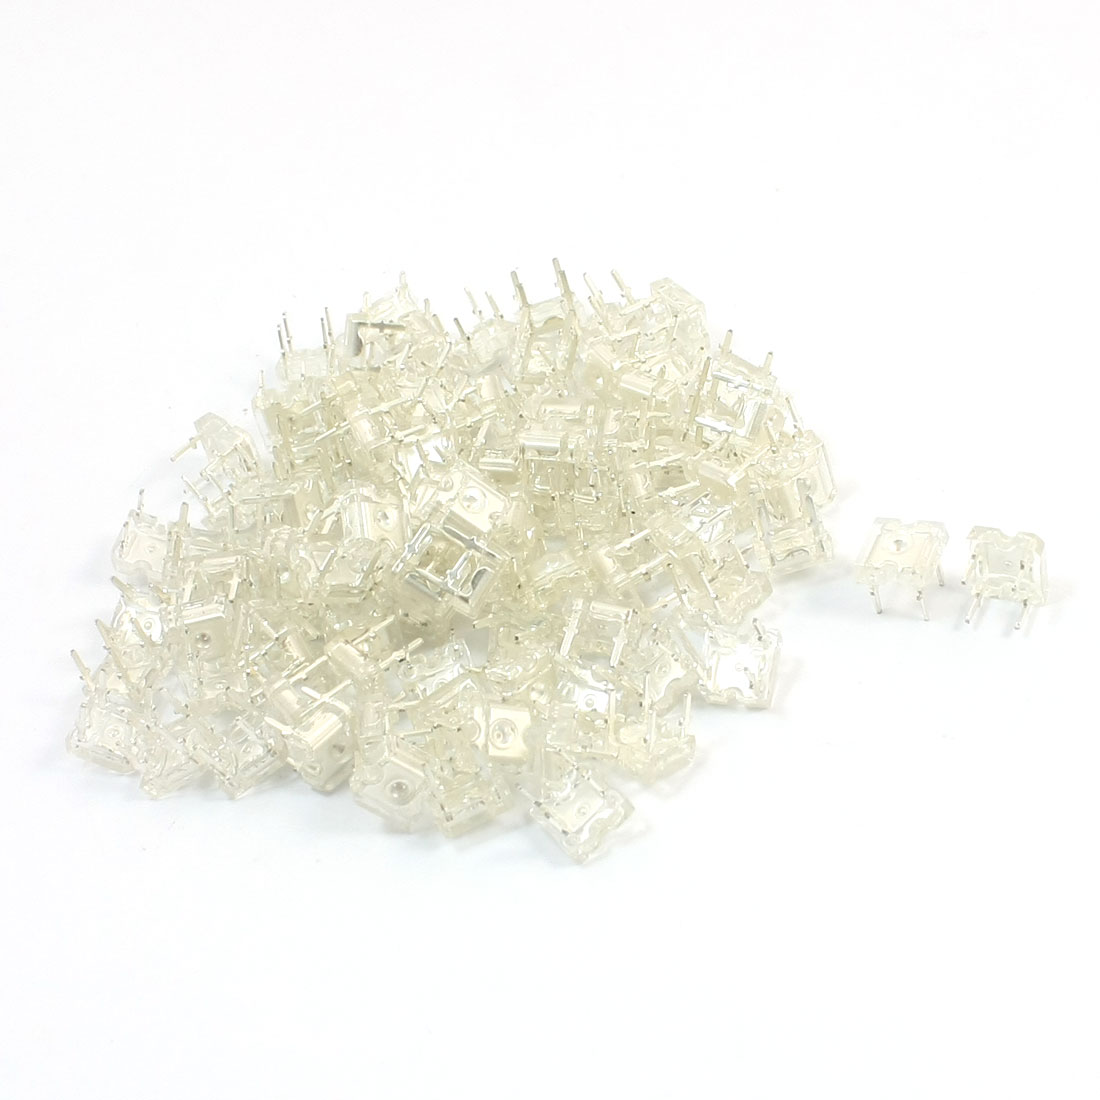 100 Pcs DC1.8-2.0V 3mm Dia Top 5mm Pitch 4 Pins Yellow Light Lamp Piranha LED Emitting Diodes